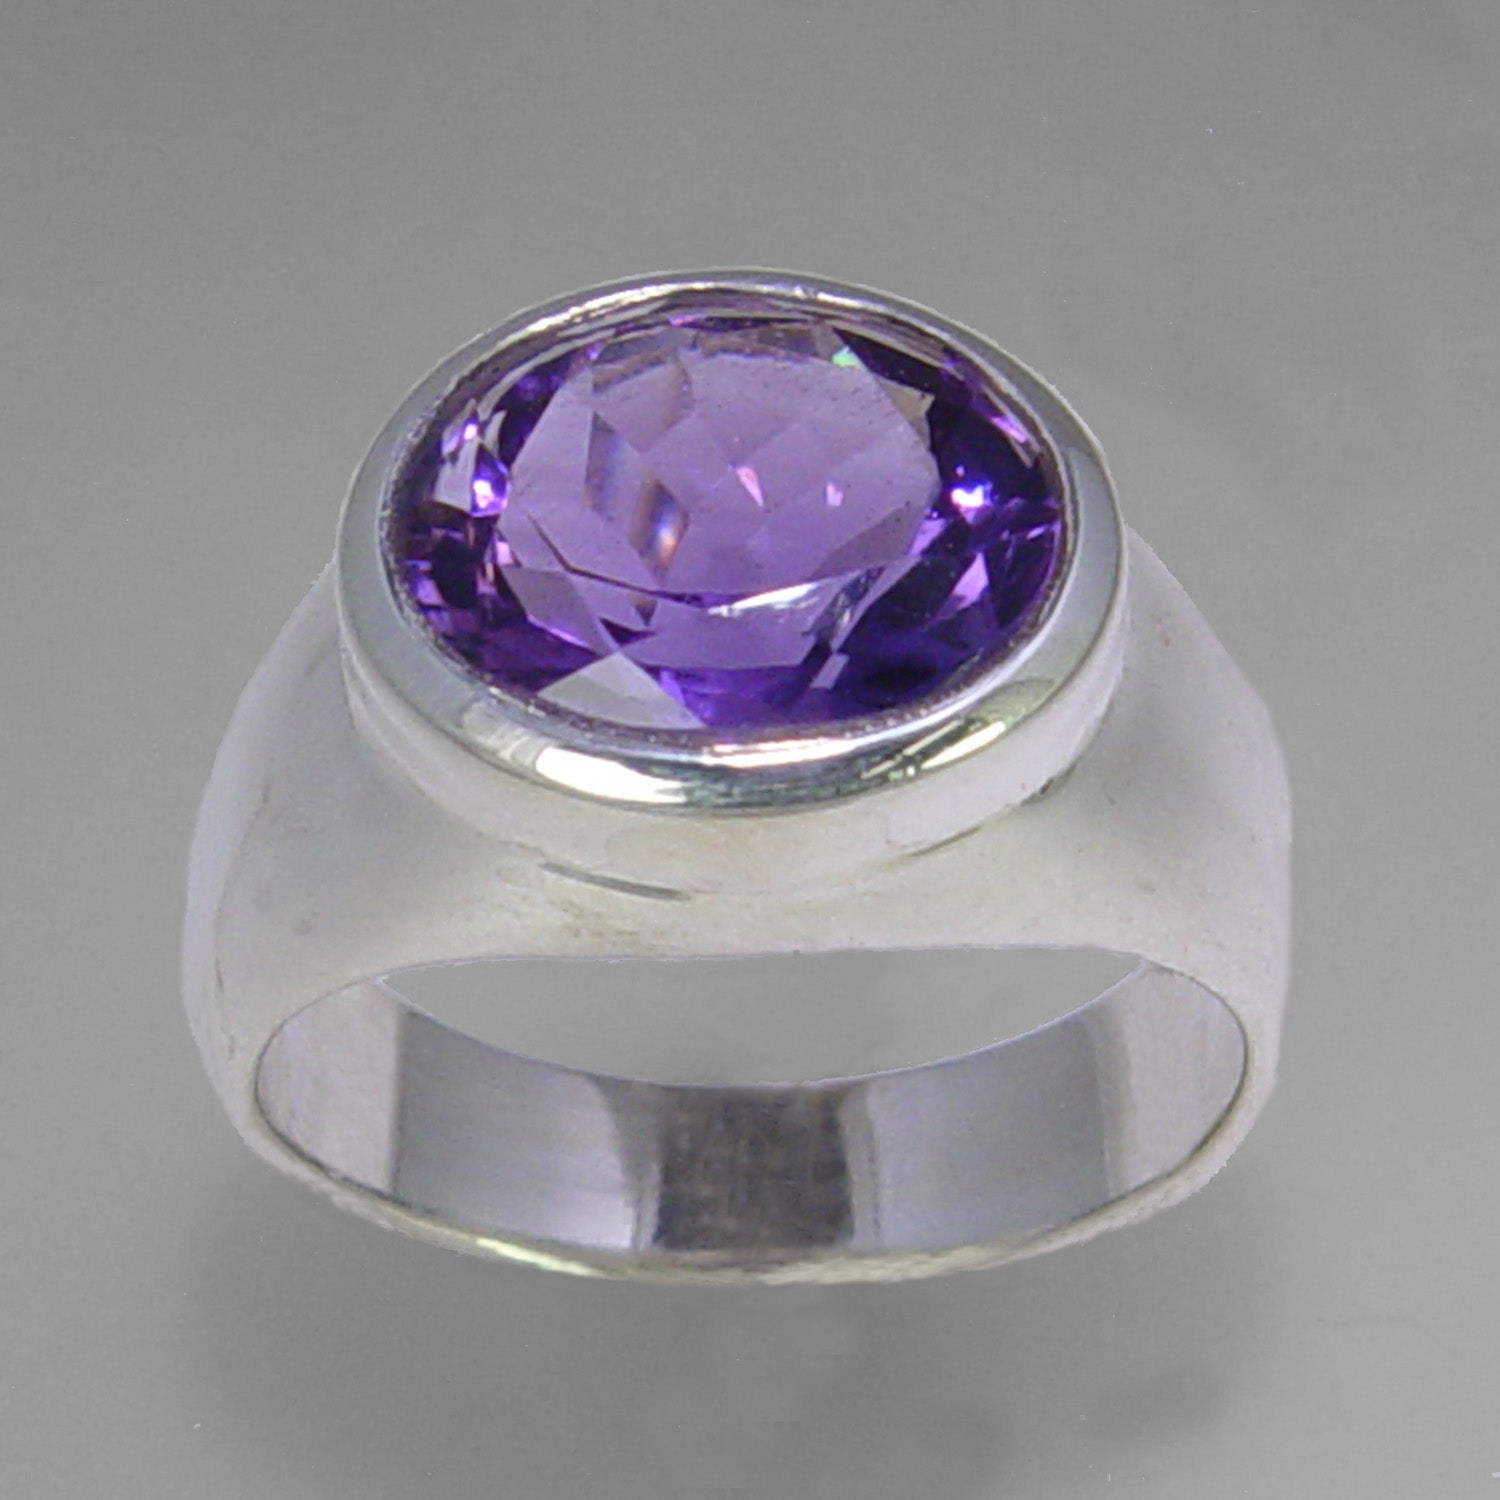 Amethyst 5.2 ct Oval Bezel Set Sterling Silver Ring, Size 7.75